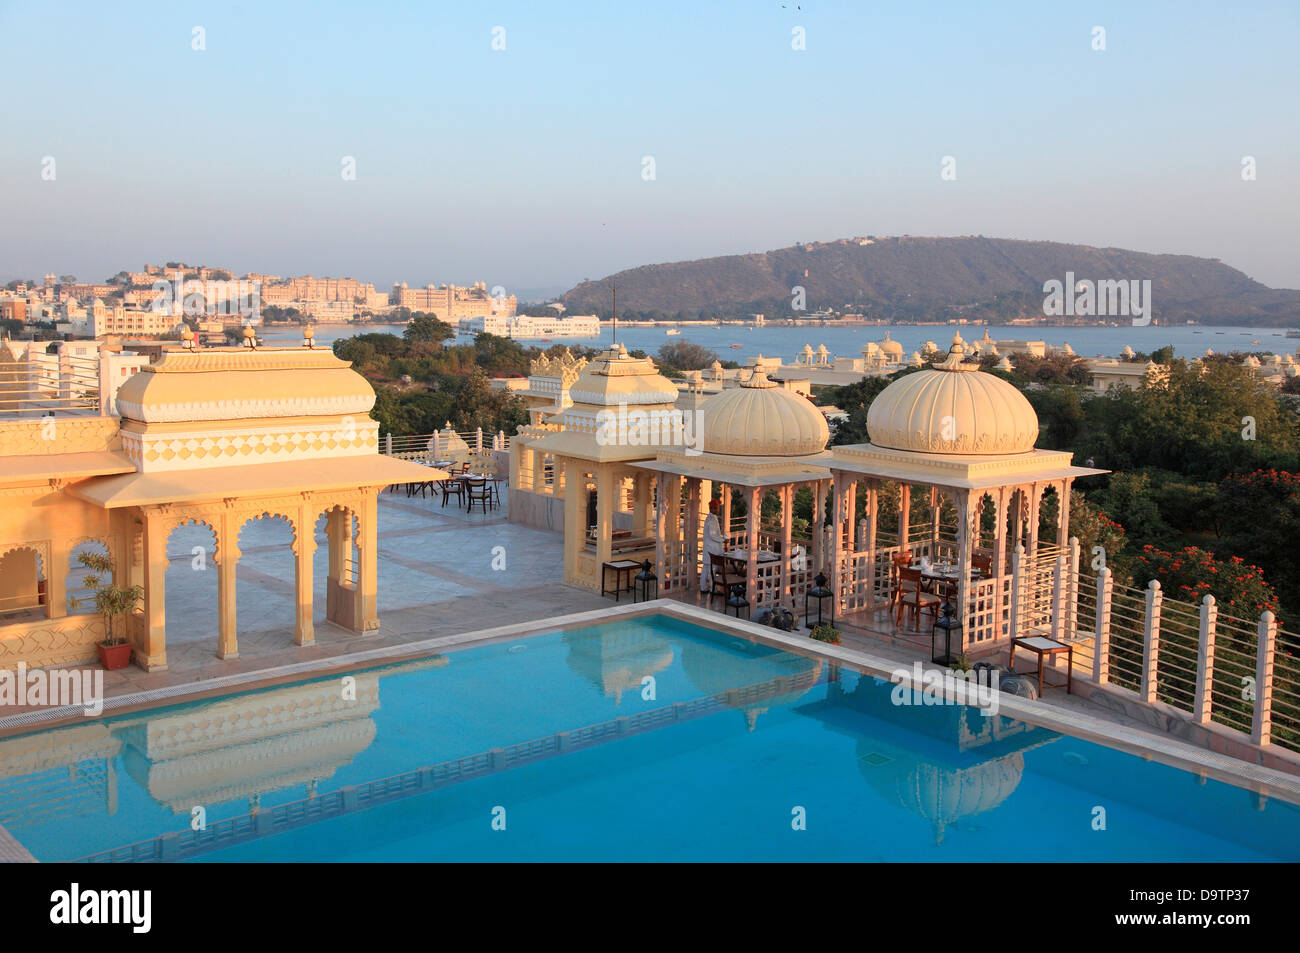 Swimming Pool And Hotel Rooftop Pavilions With Taj Lake Palace In The Stock Photo Royalty Free